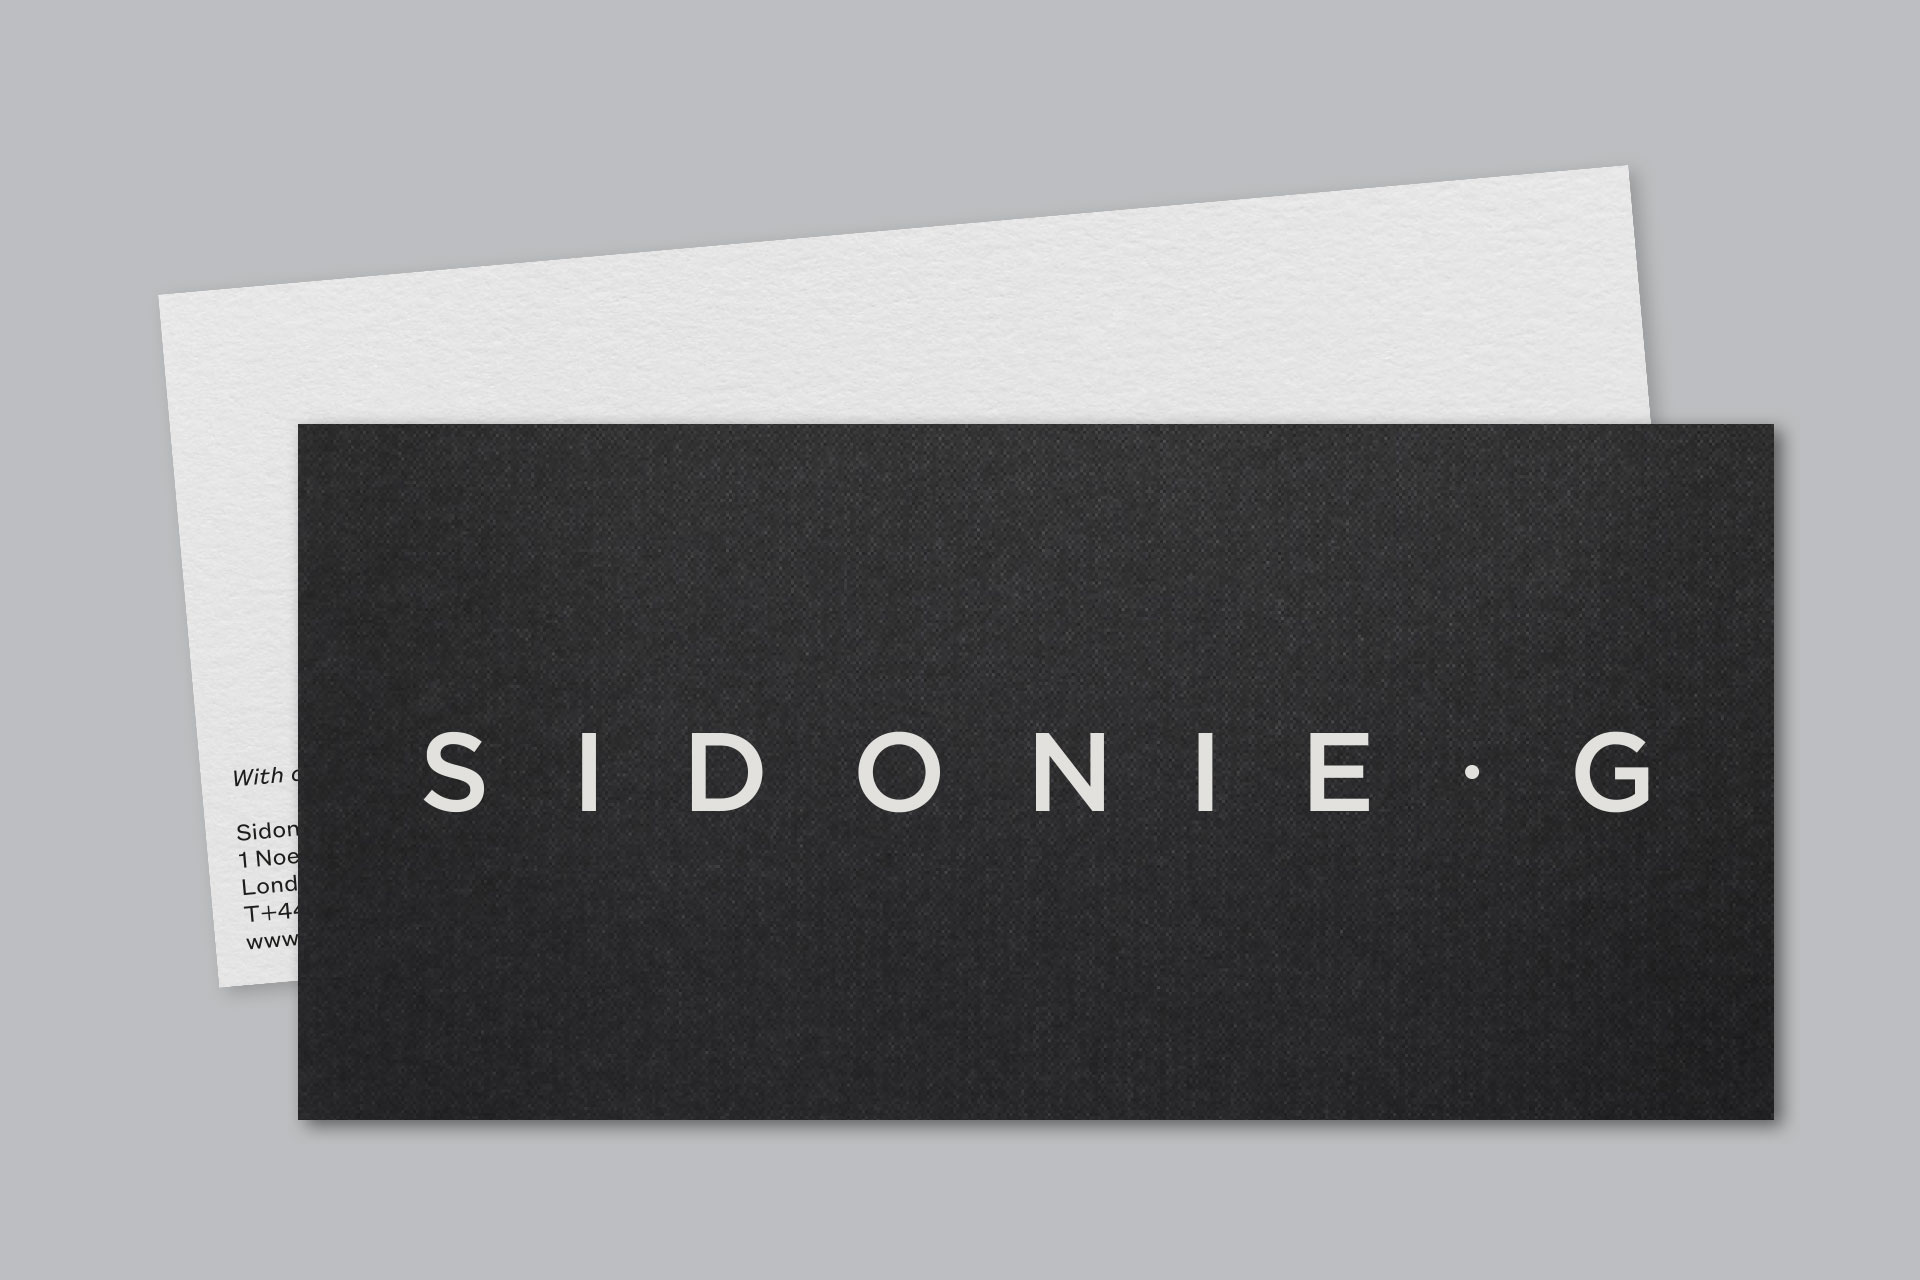 Sidonie G Communications 11